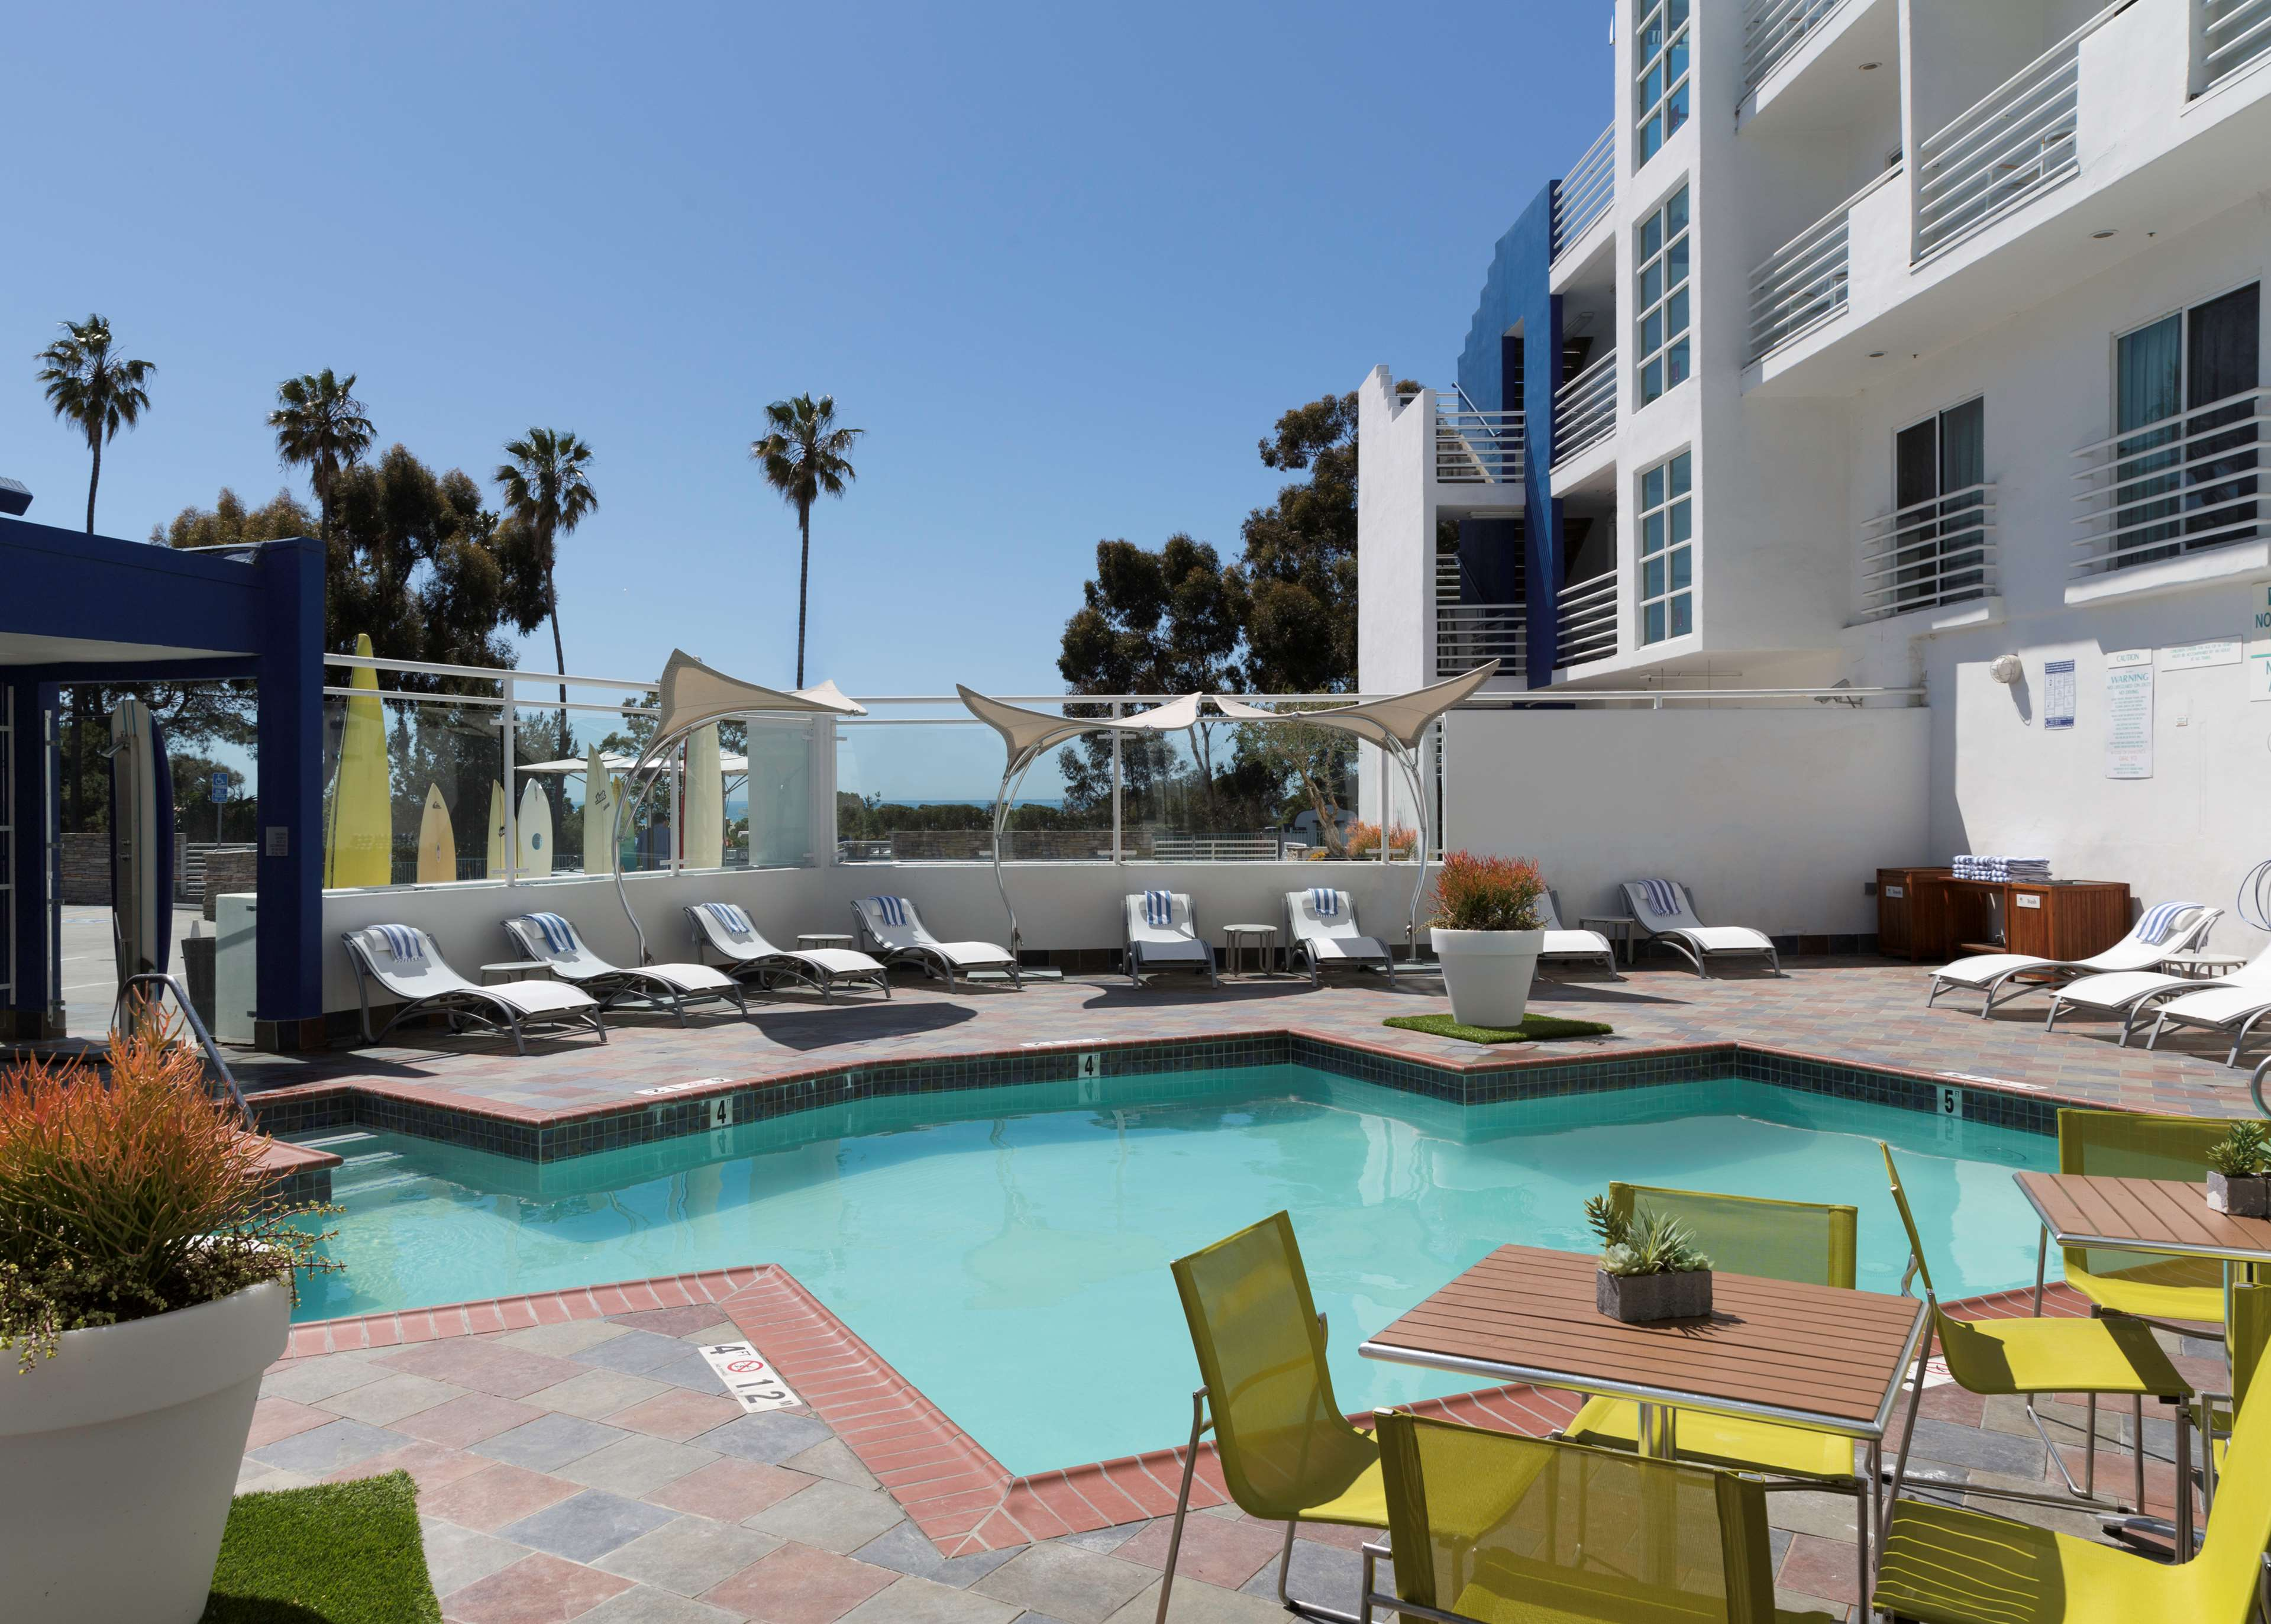 DoubleTree Suites by Hilton Hotel Doheny Beach - Dana Point image 6